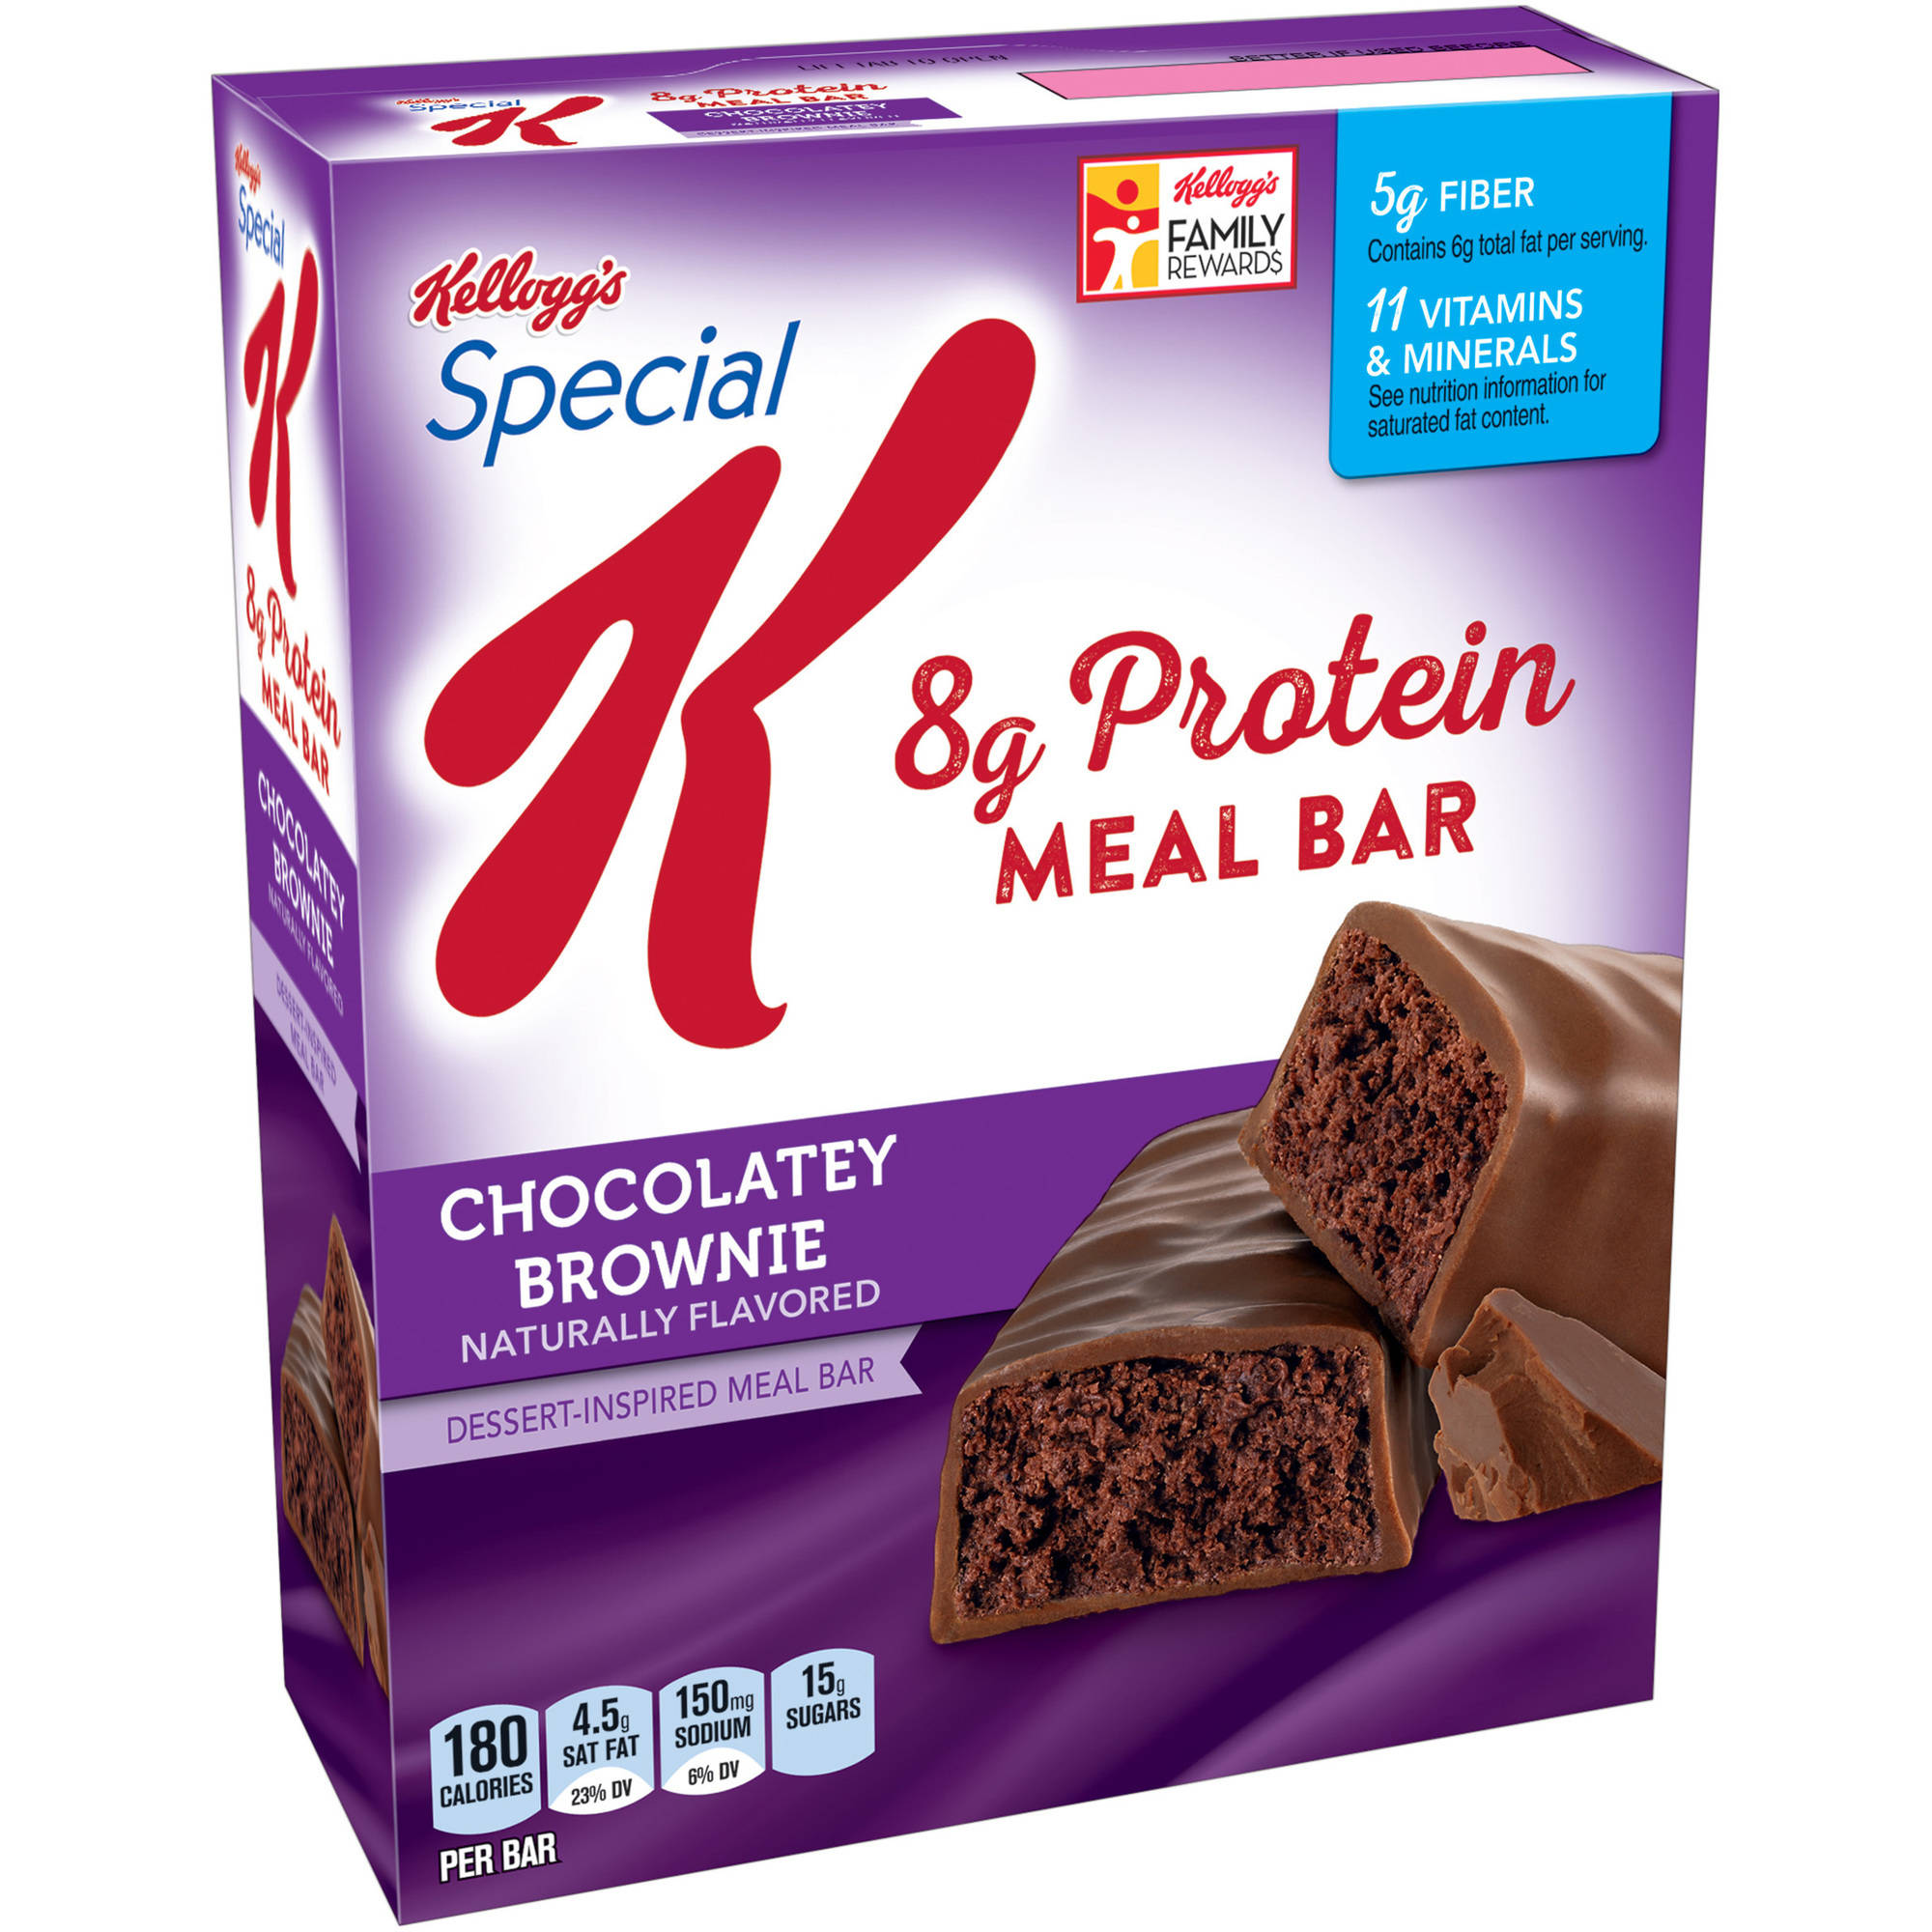 Kellogg's Special K Protein Chocolatey Brownie Dessert-Inspired Meal Bar, 1.59 oz, 5 count